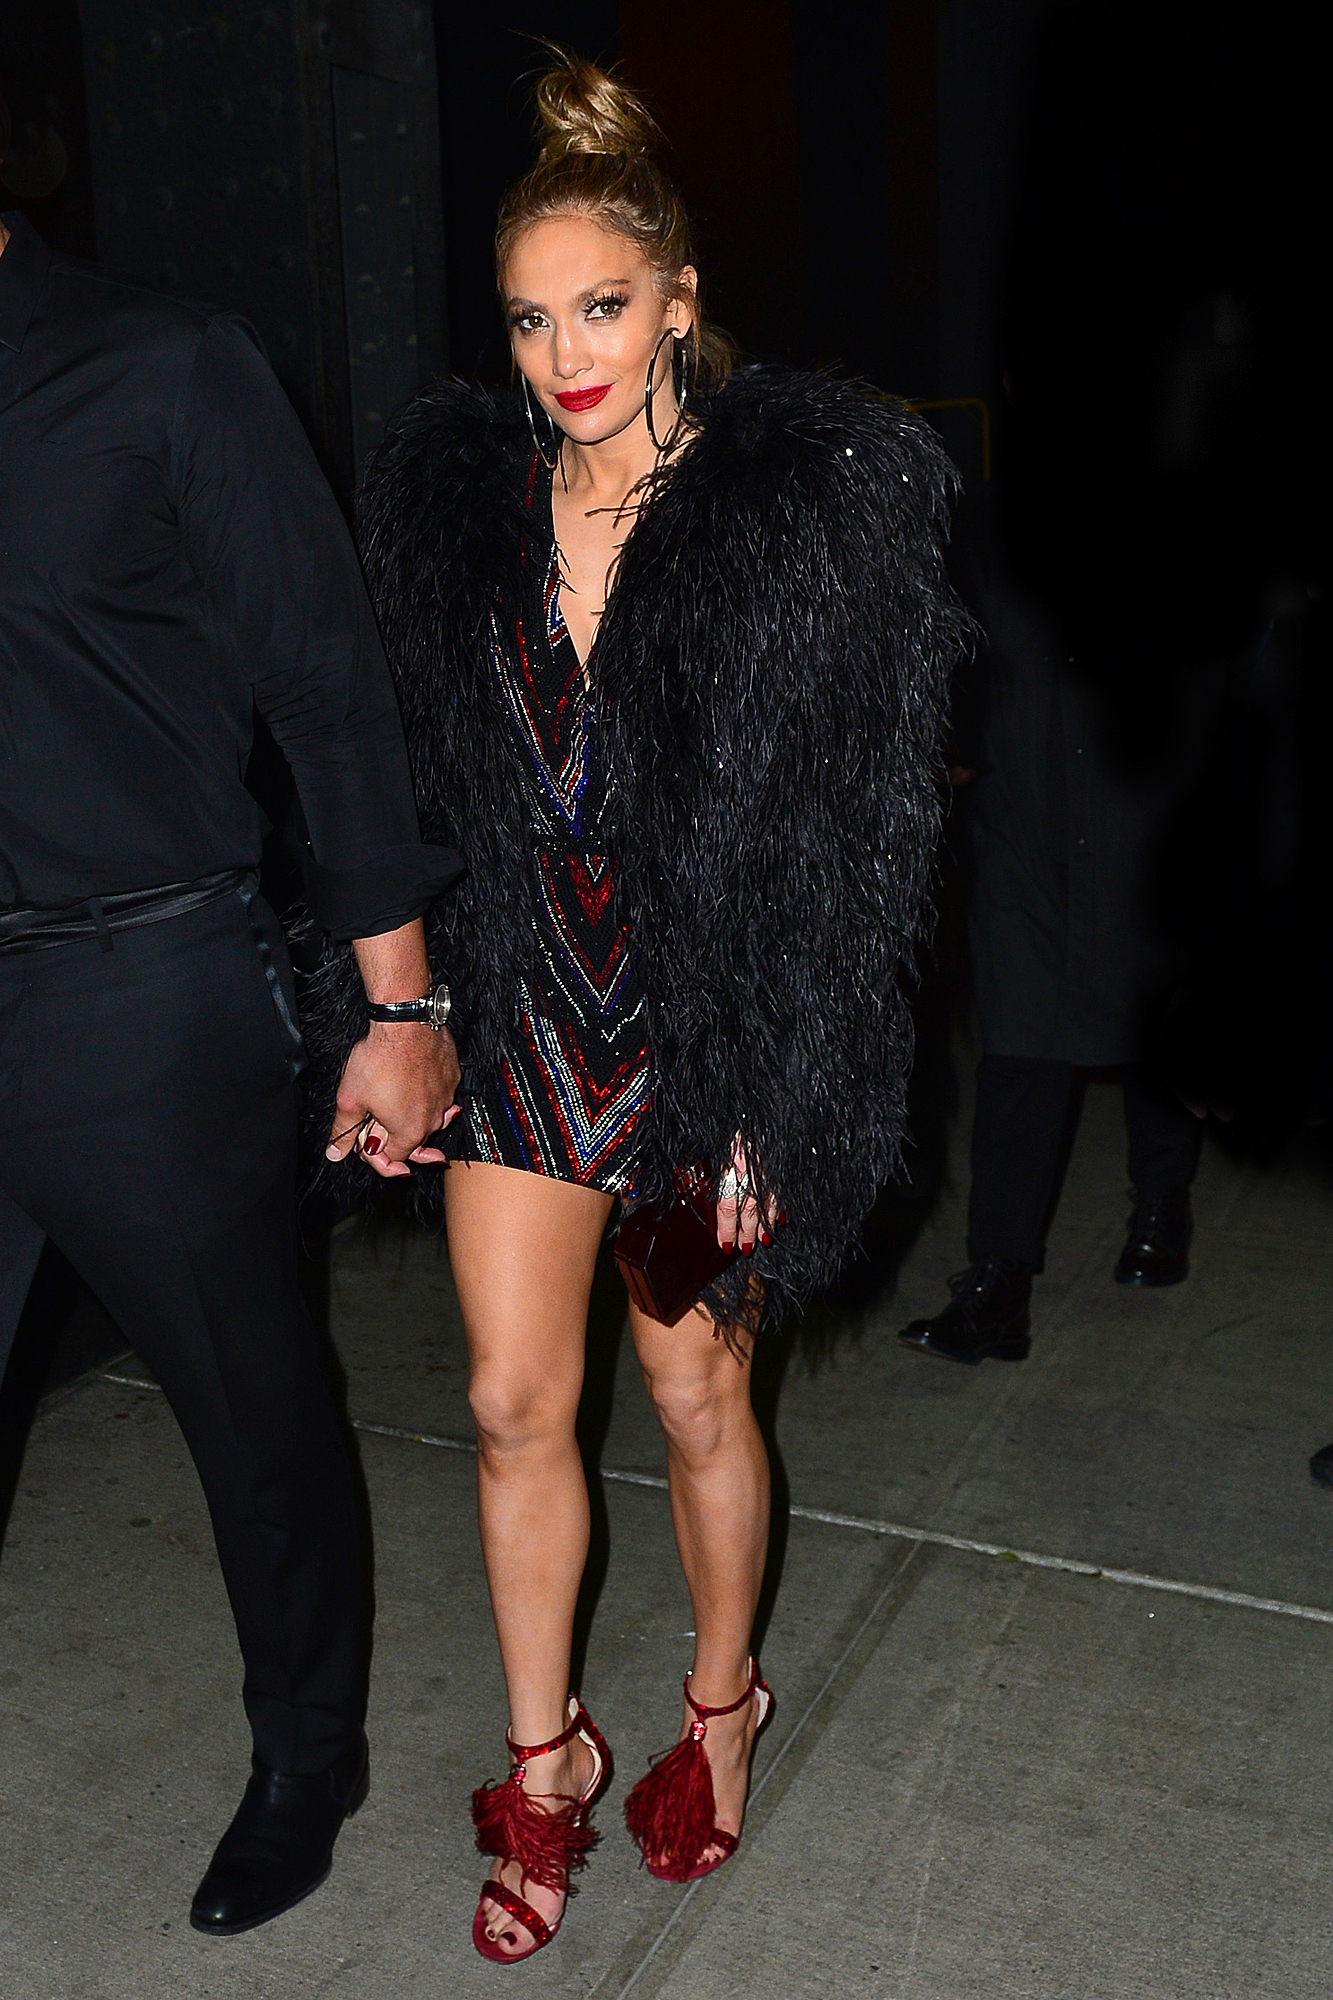 Jennifer Lopez and Alex Rodriguez leave the Met Gala after party at Boom Boom Room in NYC